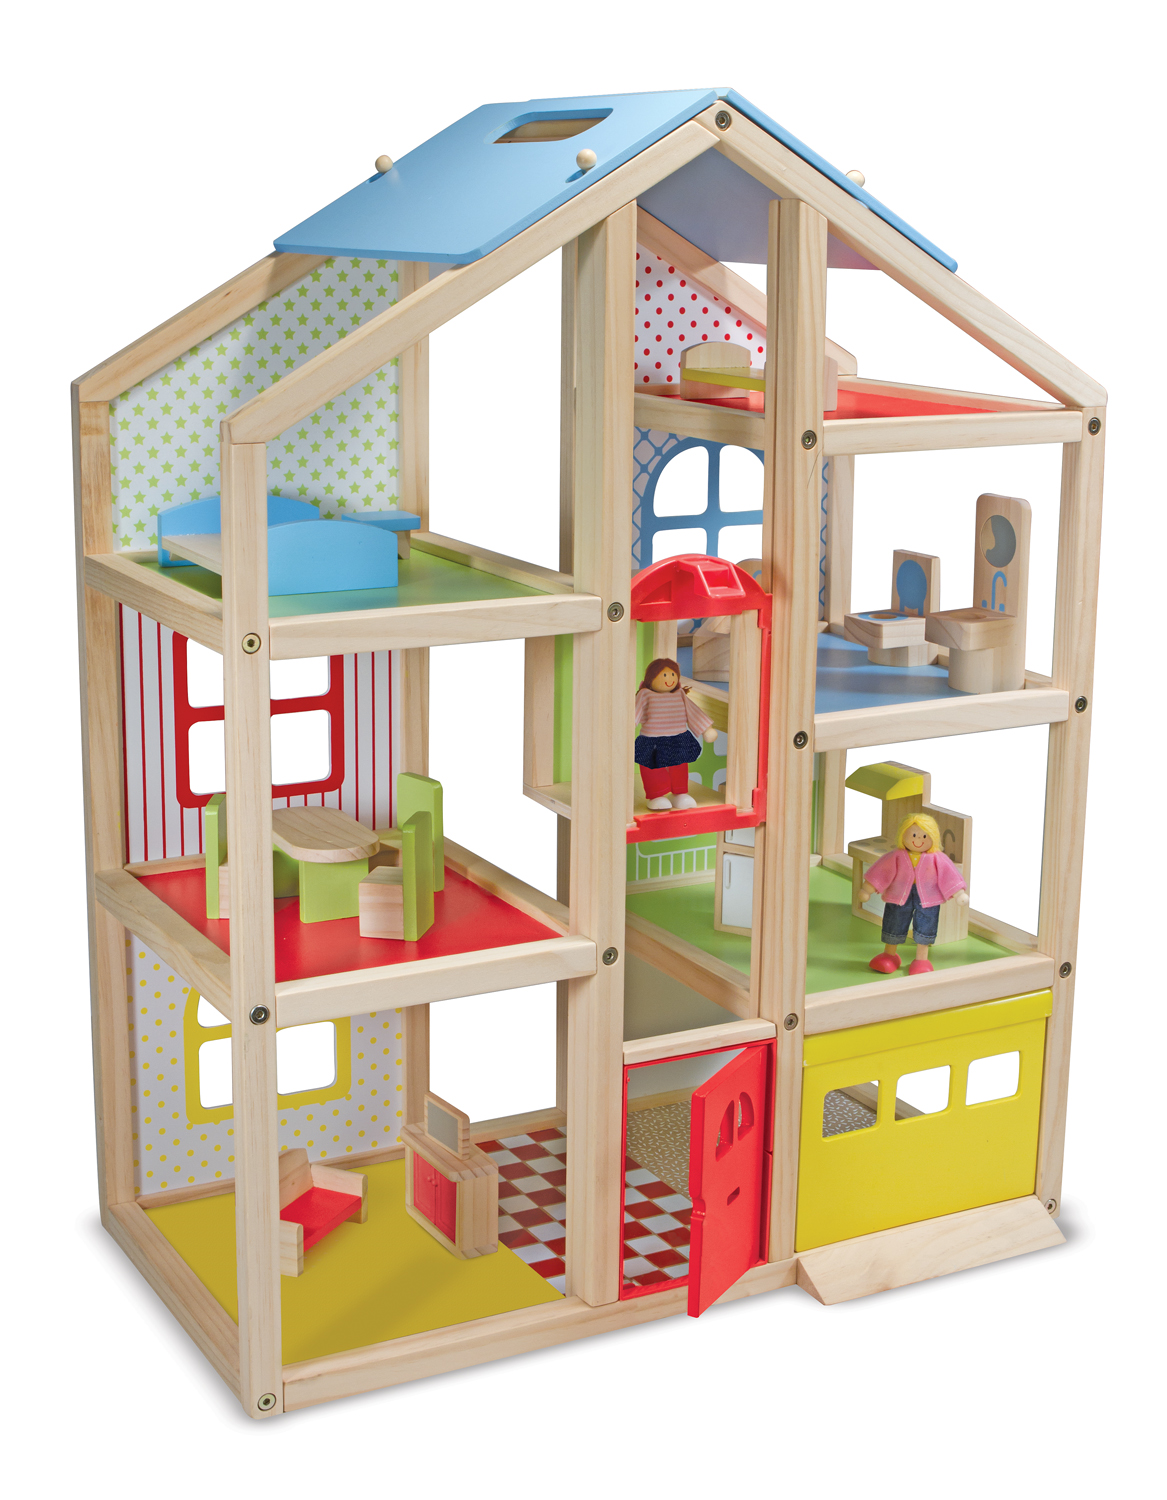 Hi rise wooden dollhouse and furniture set new melissa and doug Dollhouse wooden furniture